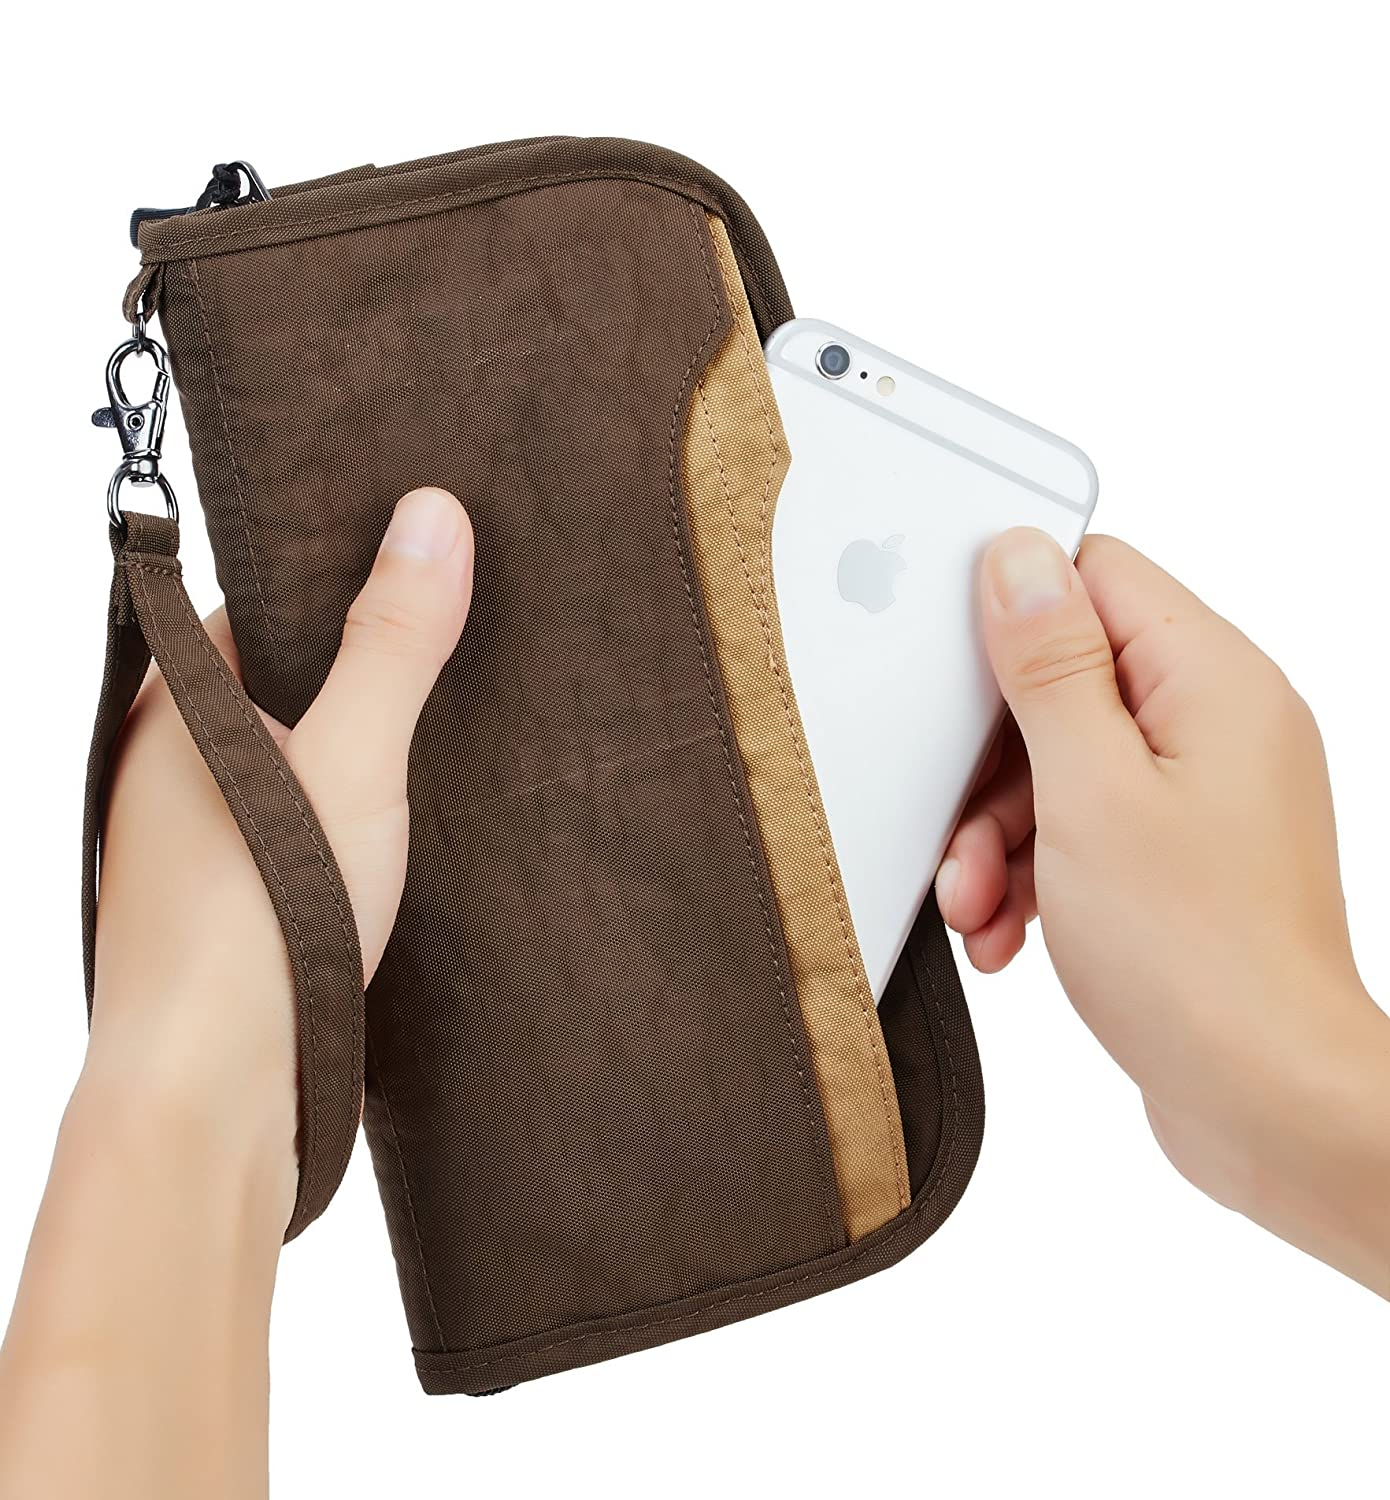 Travelambo Travel Wallet Passport Holder Wallet RFID Blocking Credit Card Holders for Men /& Women tra2302